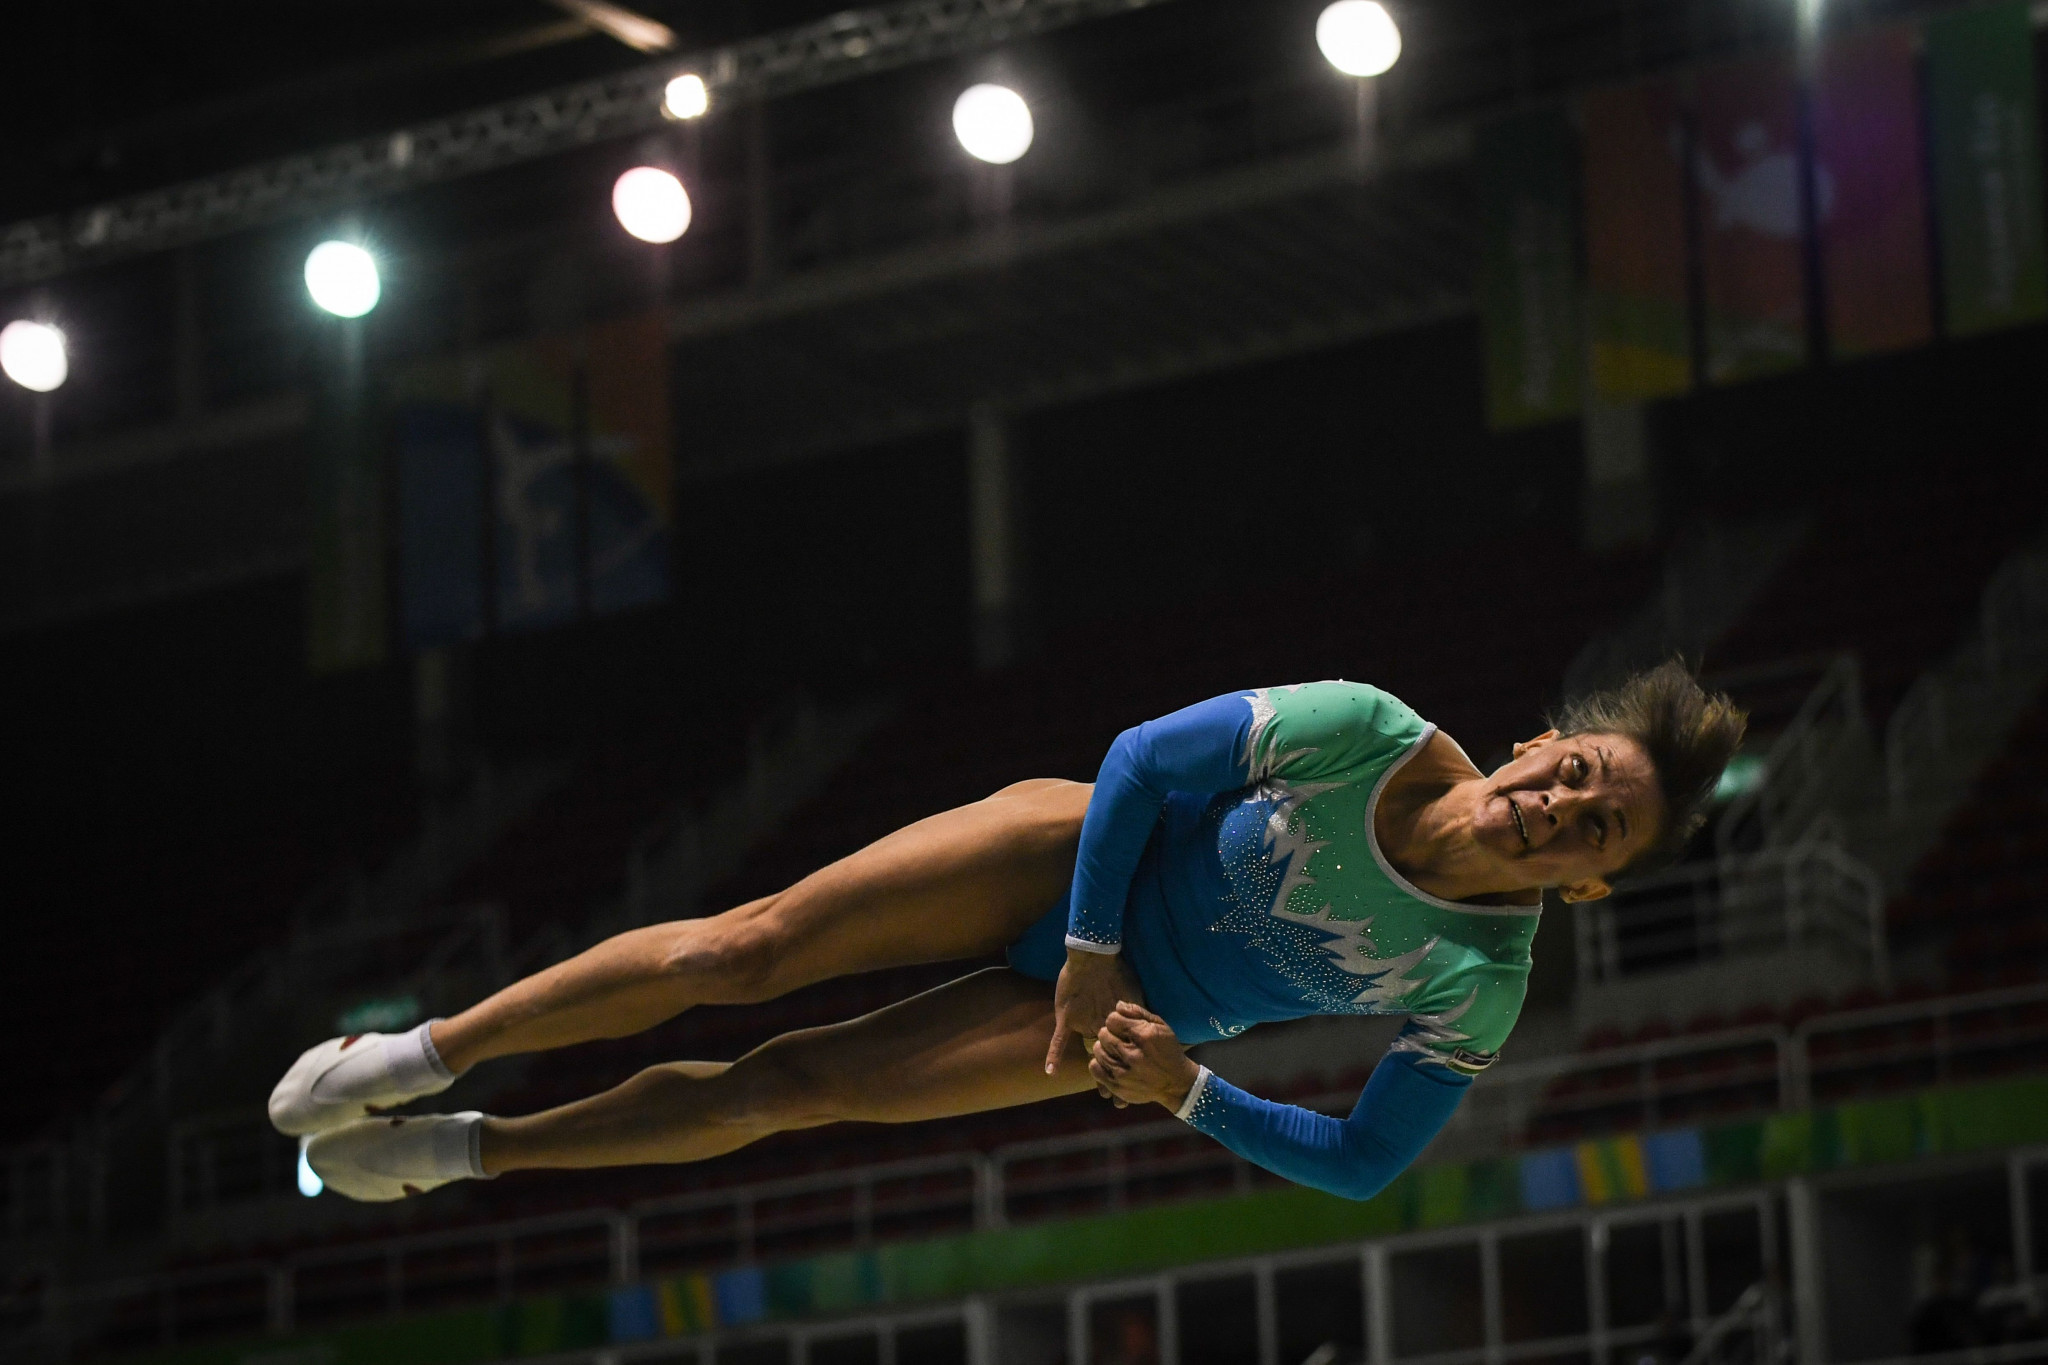 Uzbekistan veteran Oksana Chusovitina secured her 15th victory in the German city as she topped the podium in the women's vault ©Getty Images